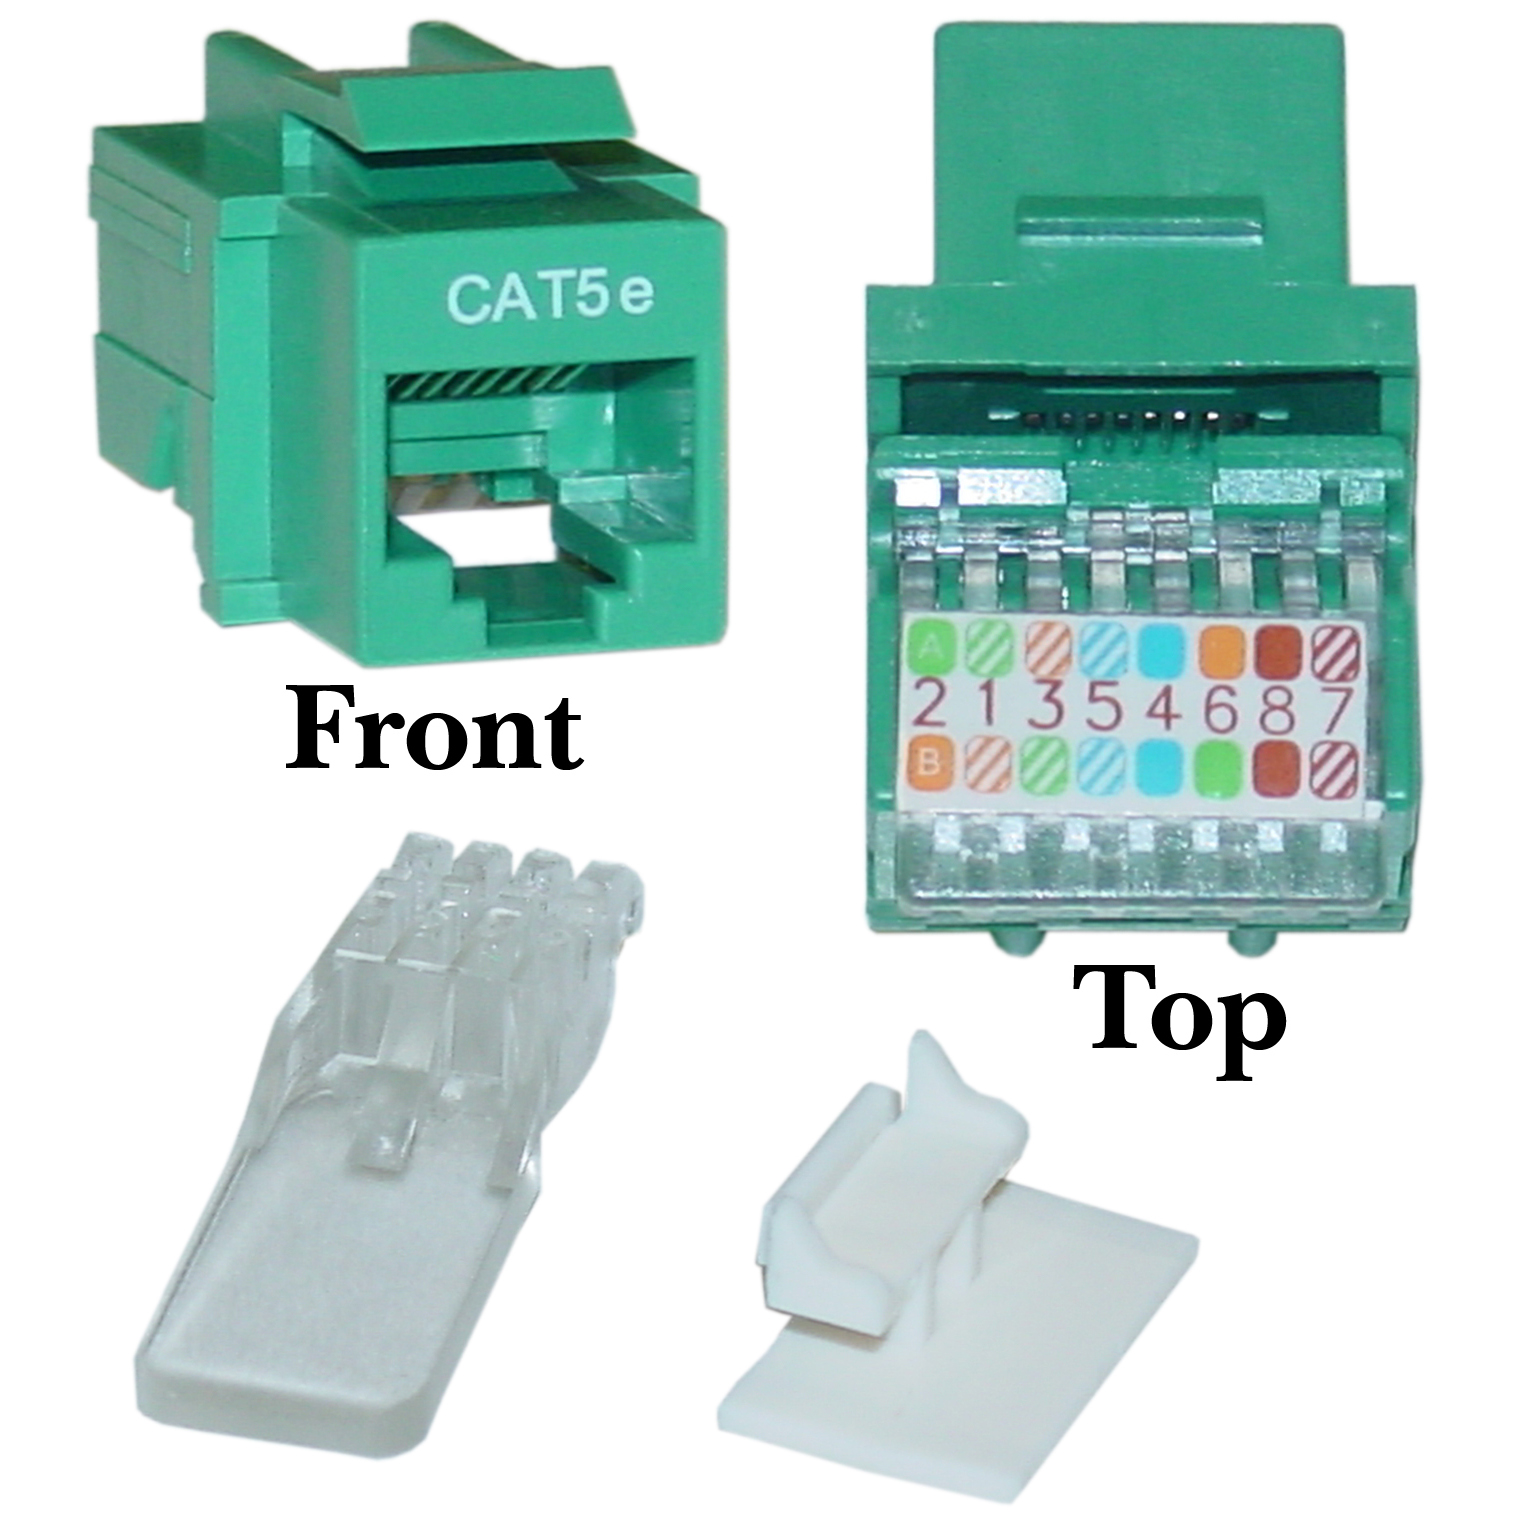 311 120gr green cat5e rj45 keystone jack toolless cablewholesale cat 5e jack diagram at mr168.co